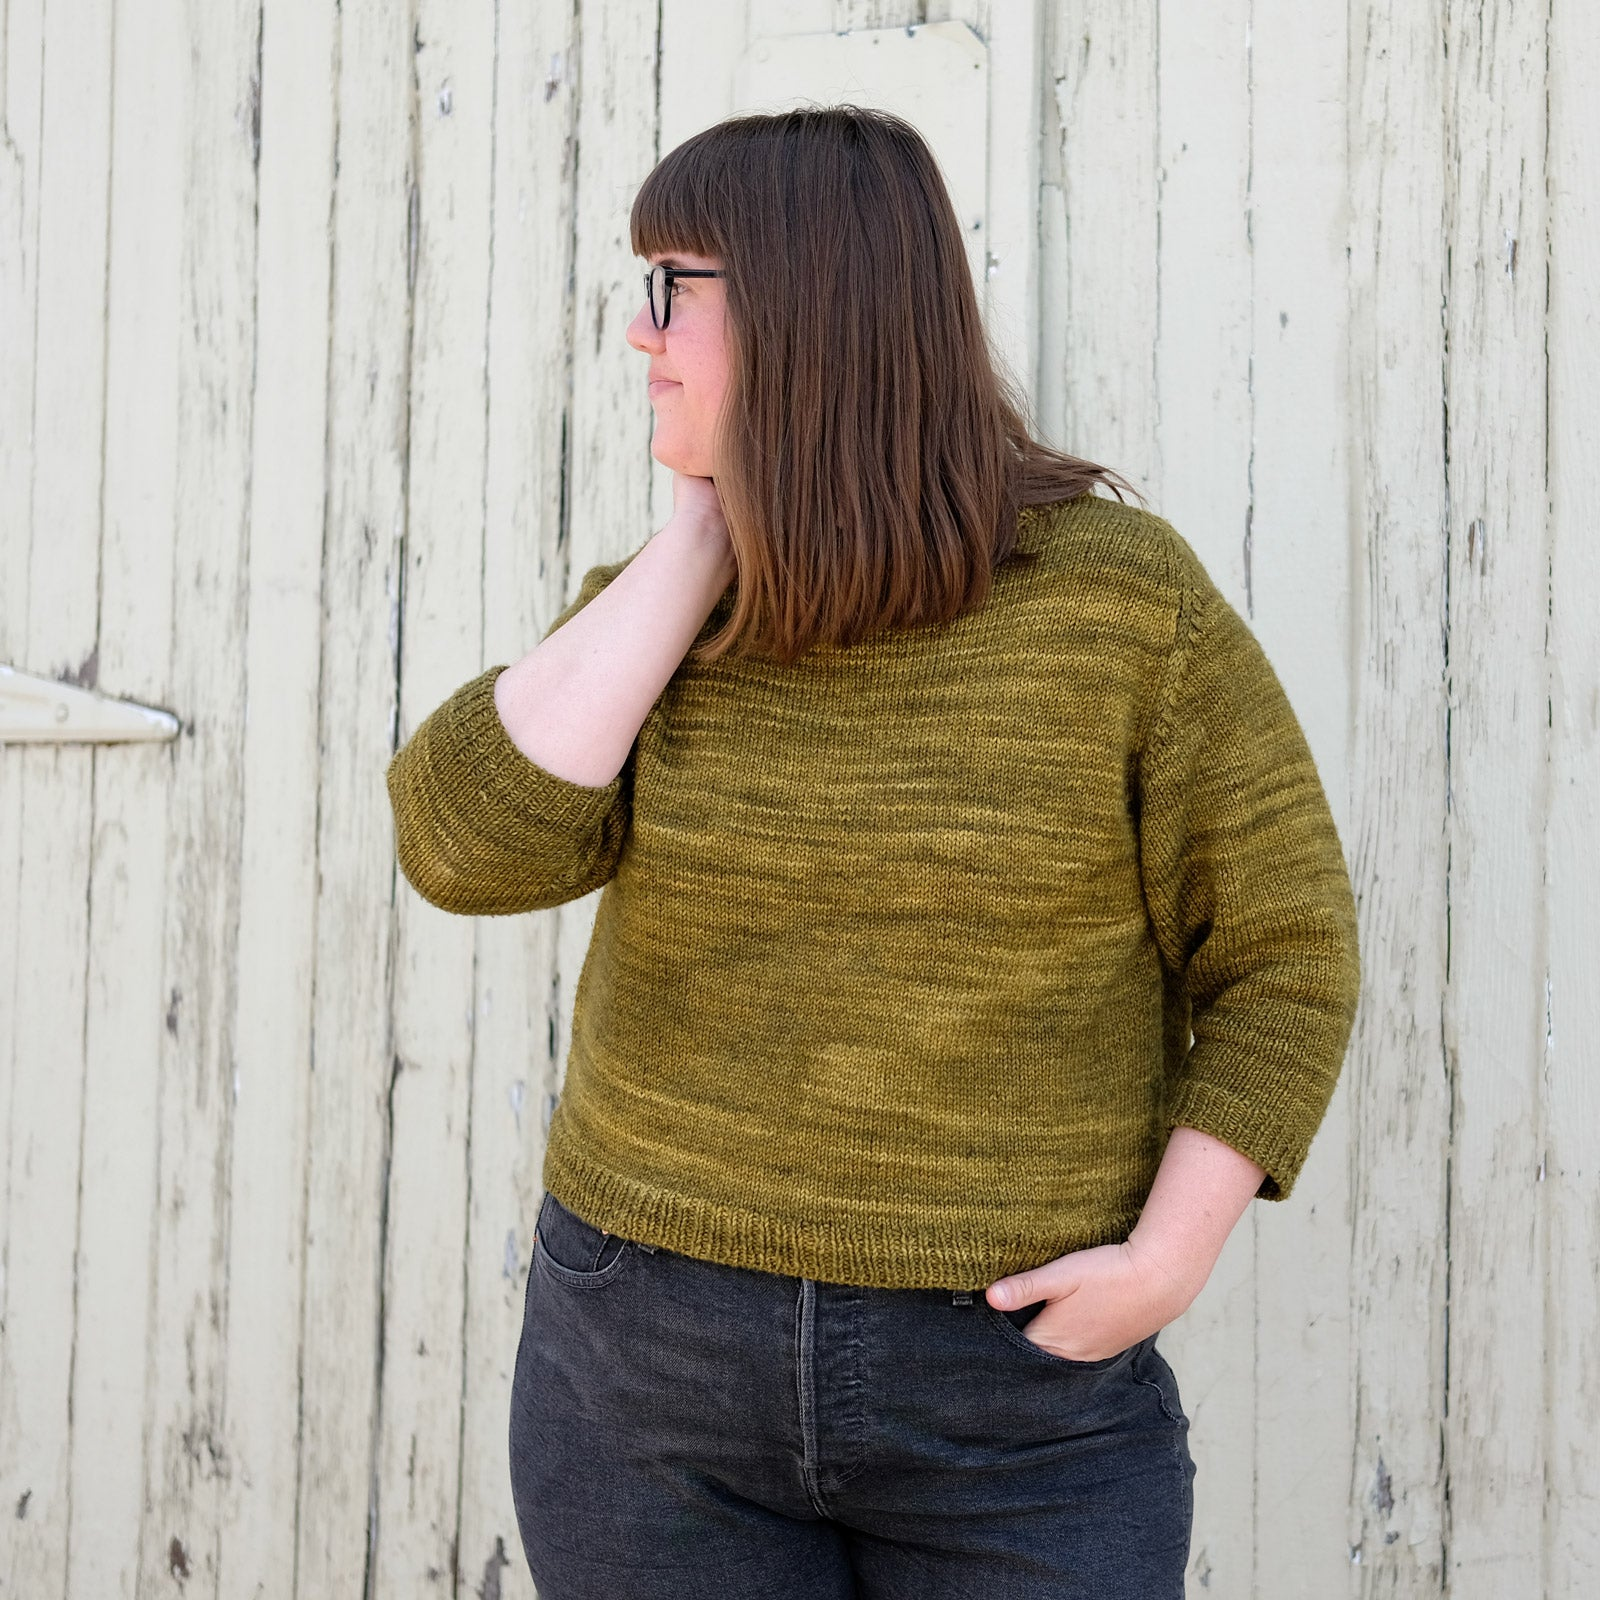 Julie Hoover's 3/4 sleeve pullover, Cline